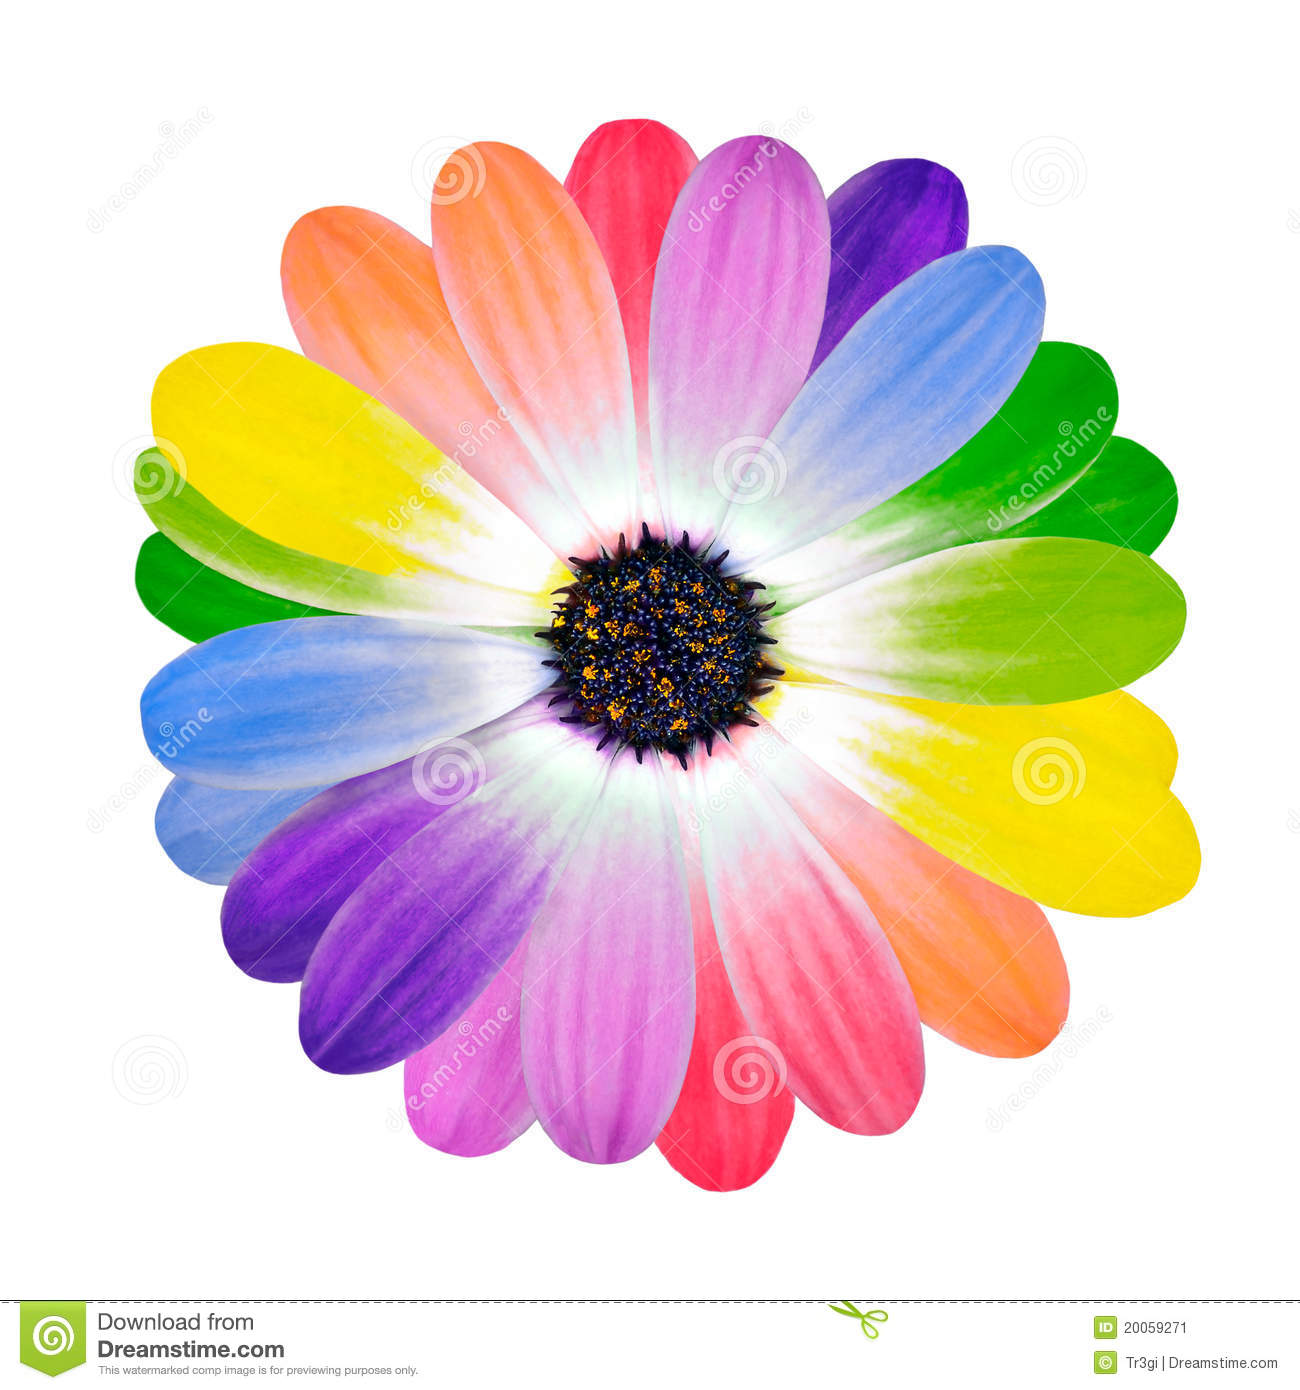 Rainbow multi colored petals of daisy flower stock image for Rainbow petals